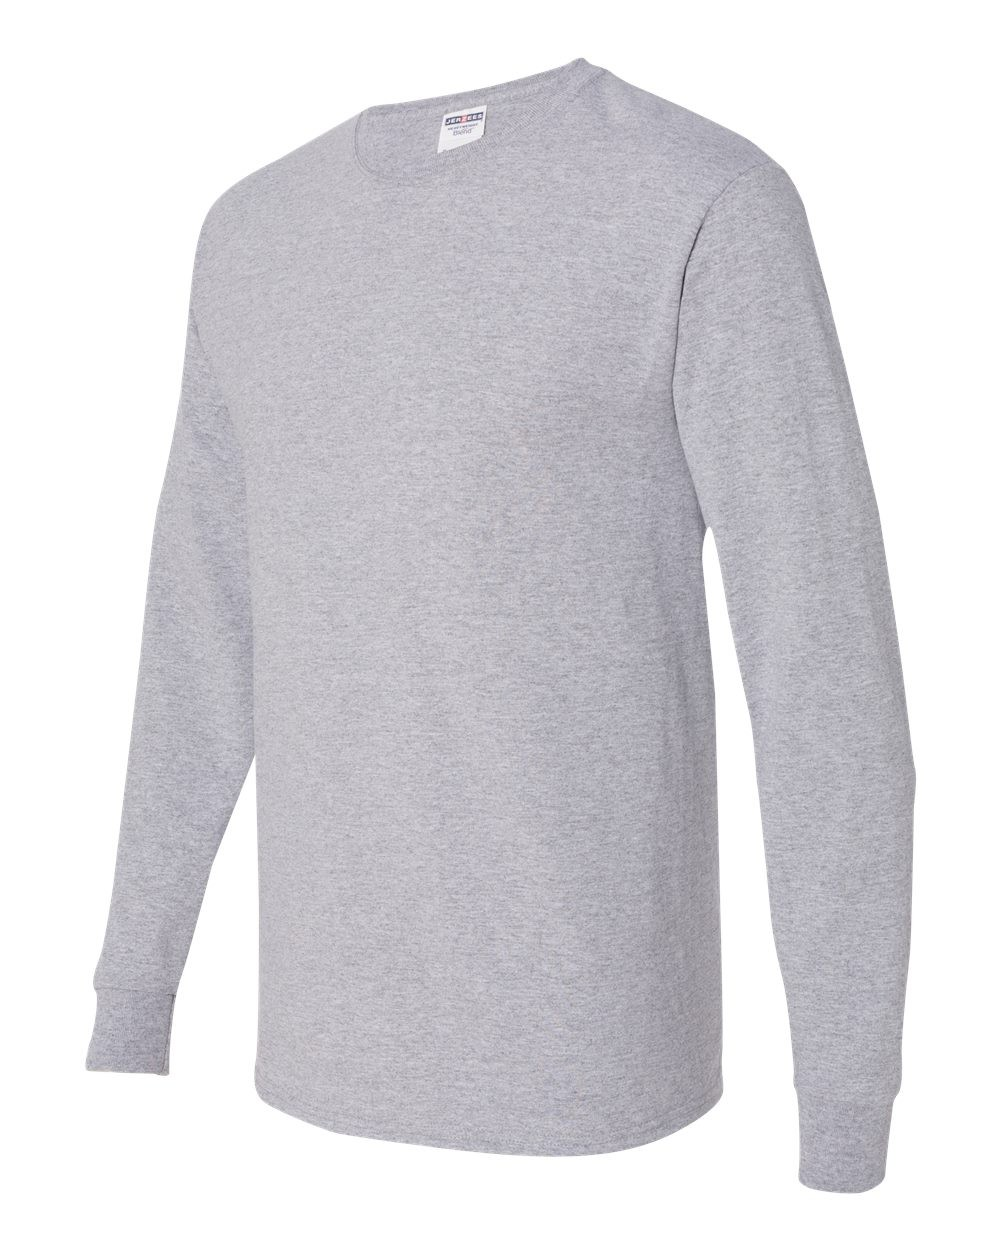 St. Peter Long Sleeve T-Shirt w/ Logo - Please Allow 2-3 Weeks for Delivery